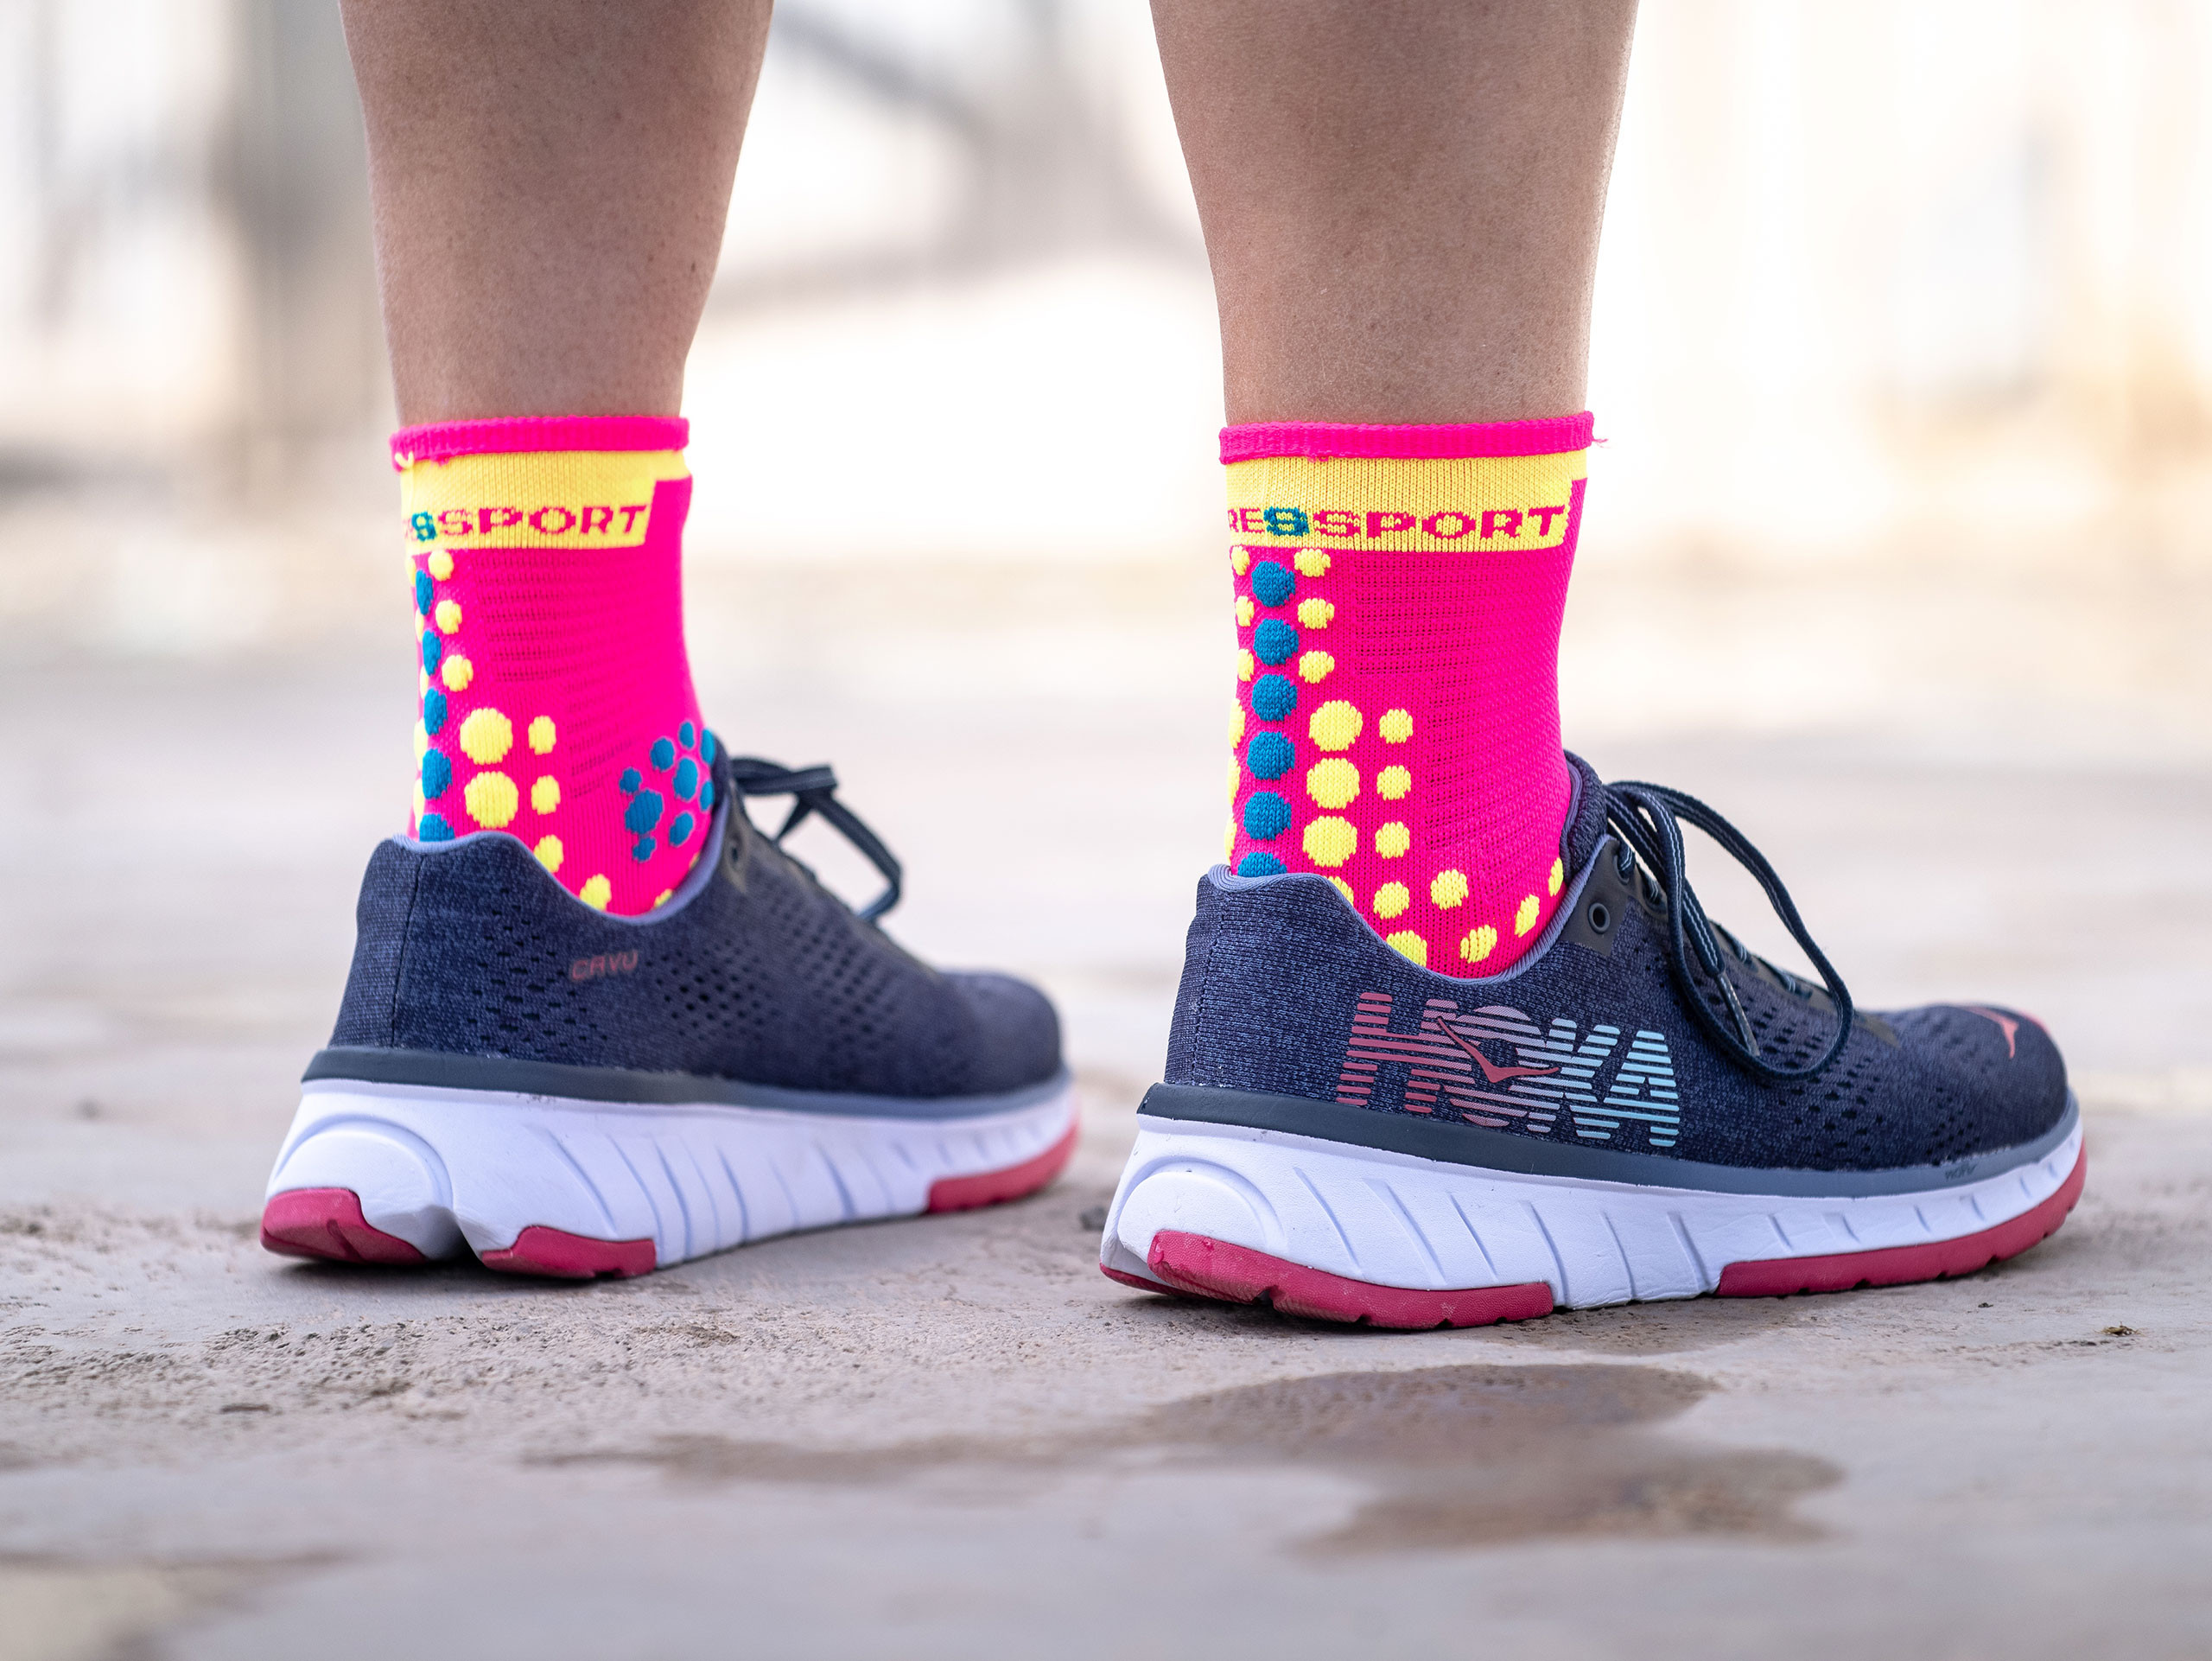 Pro Racing Socks v3.0 Run High neonpink